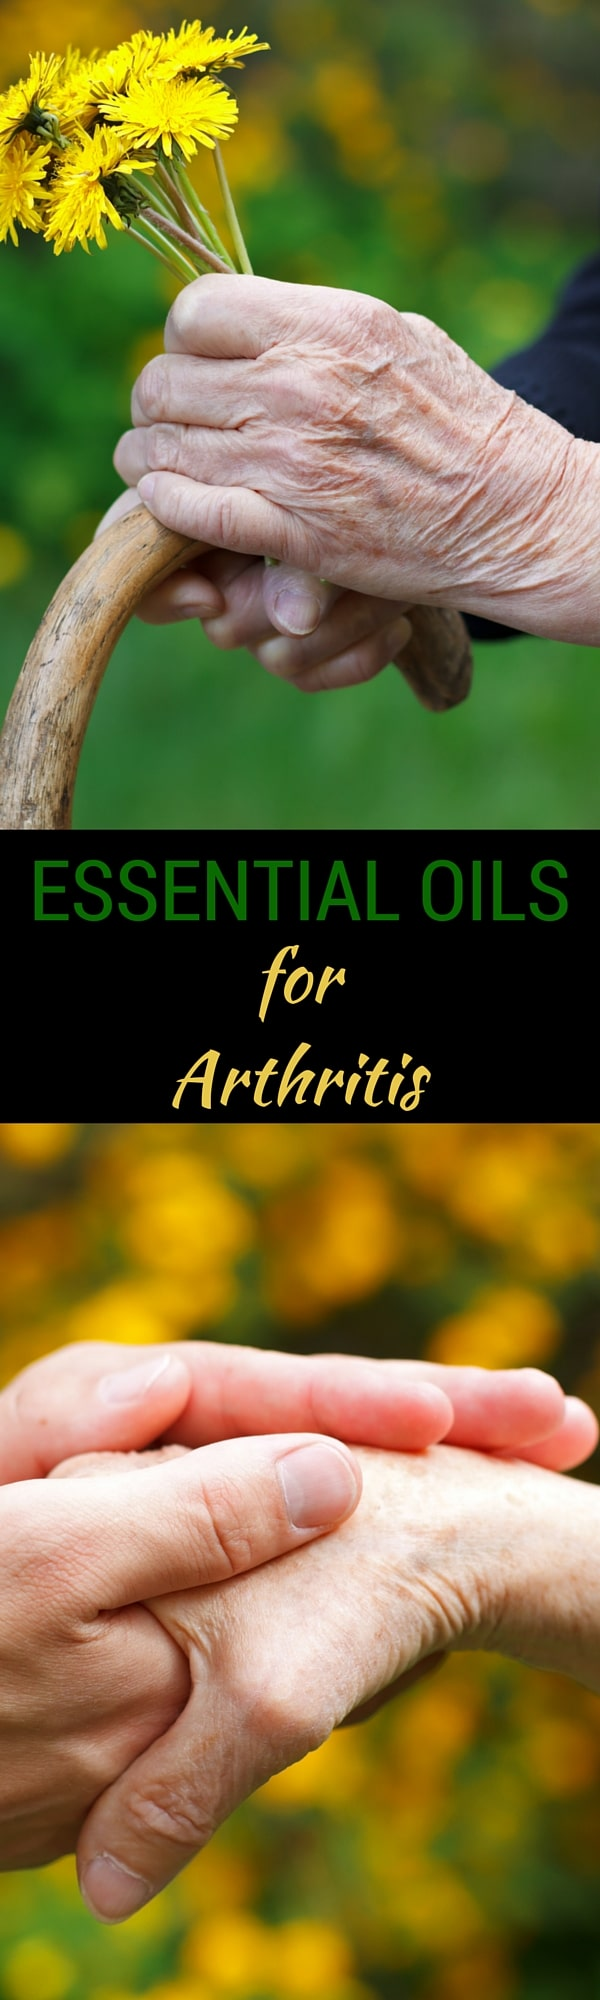 Learn how to use Essential Oils for Arthritis Pain in your hands, knees, hip, feet, neck and more.  With recipes to help you combat inflammation and pain naturally, don't miss these home remedies for arthritis.  #arthritis #pain #essentialoils #naturalremedies